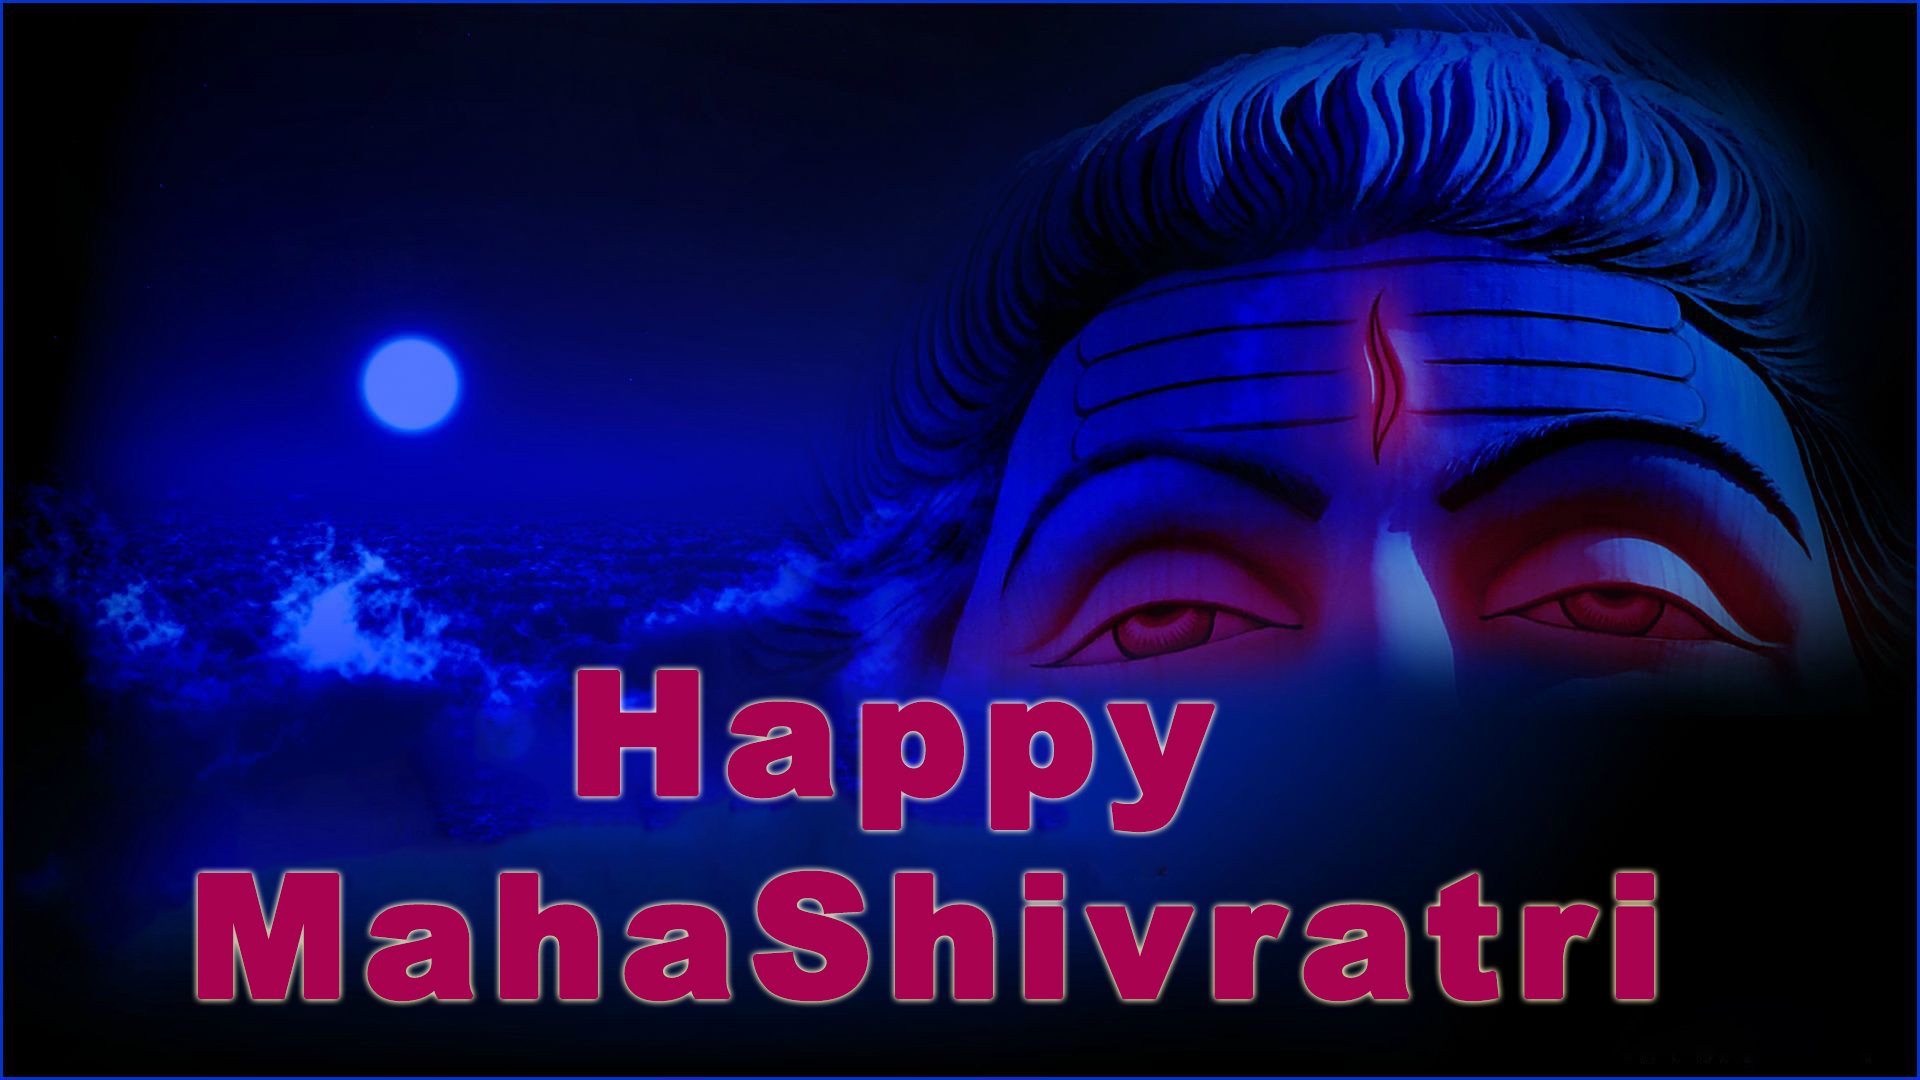 Mahashivratri Live Wallpaper Download